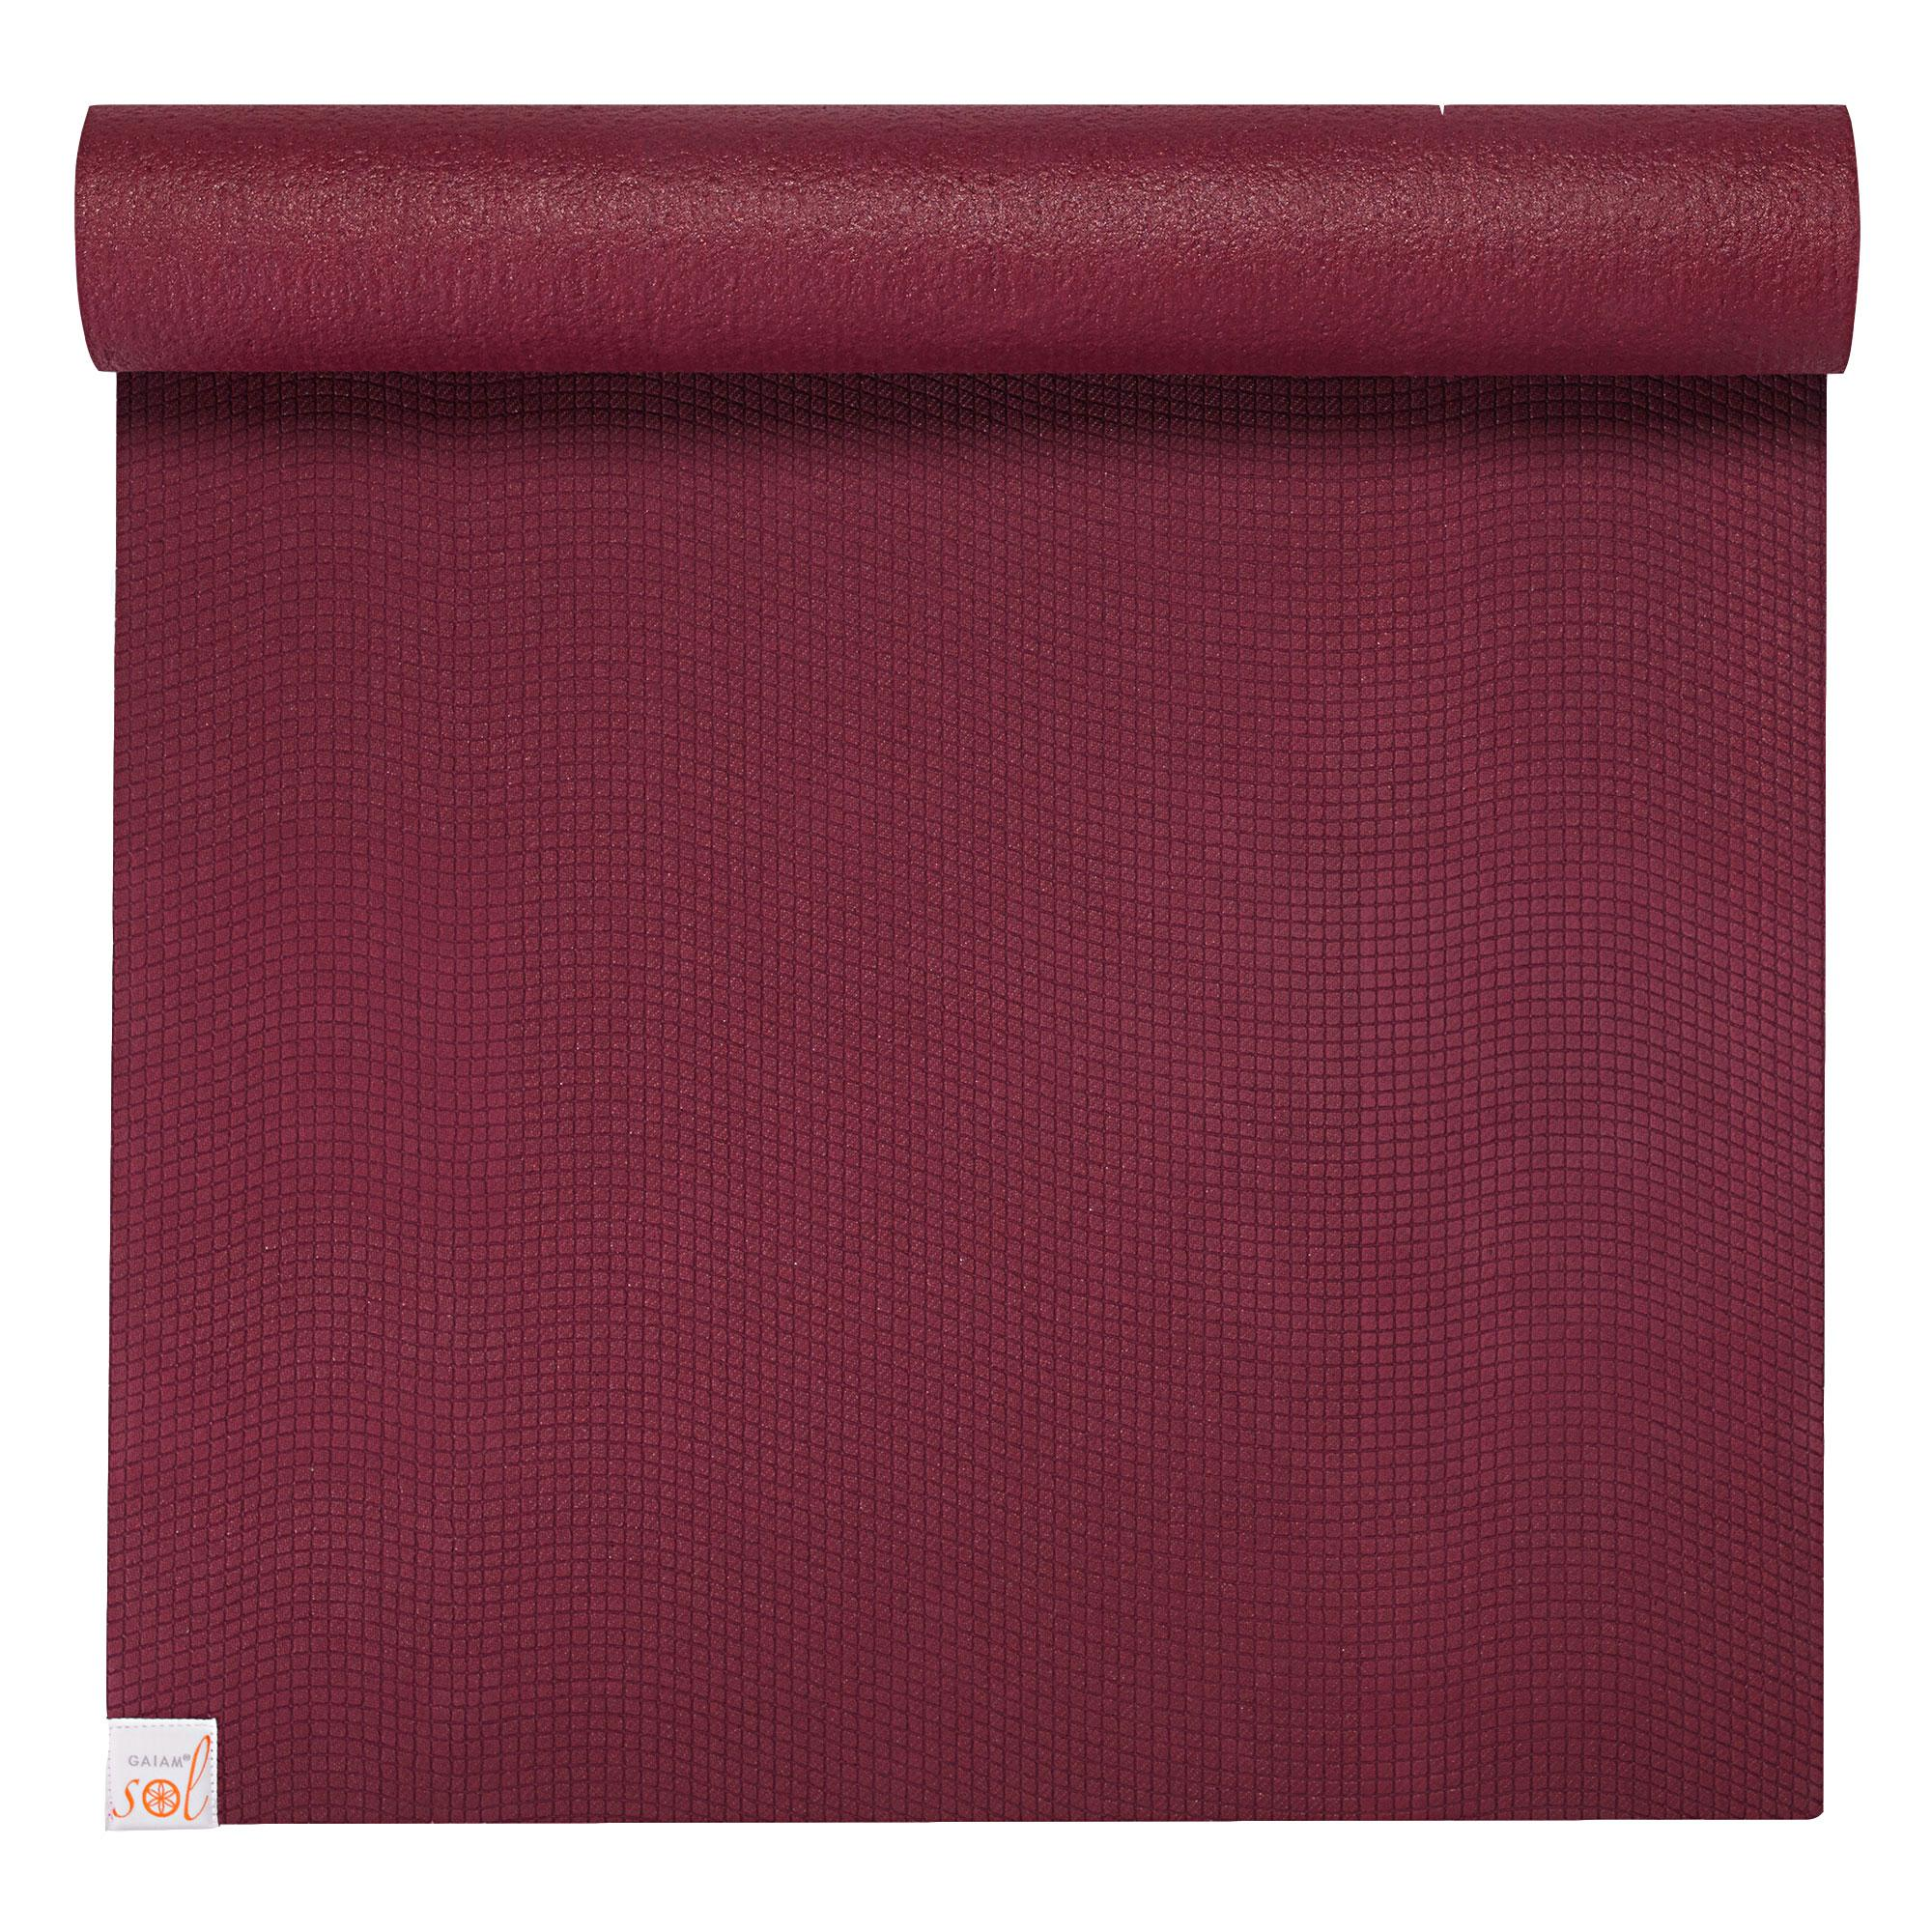 Amazon Com Gaiam Sol Sure Grip Yoga Mat Cranberry 4mm